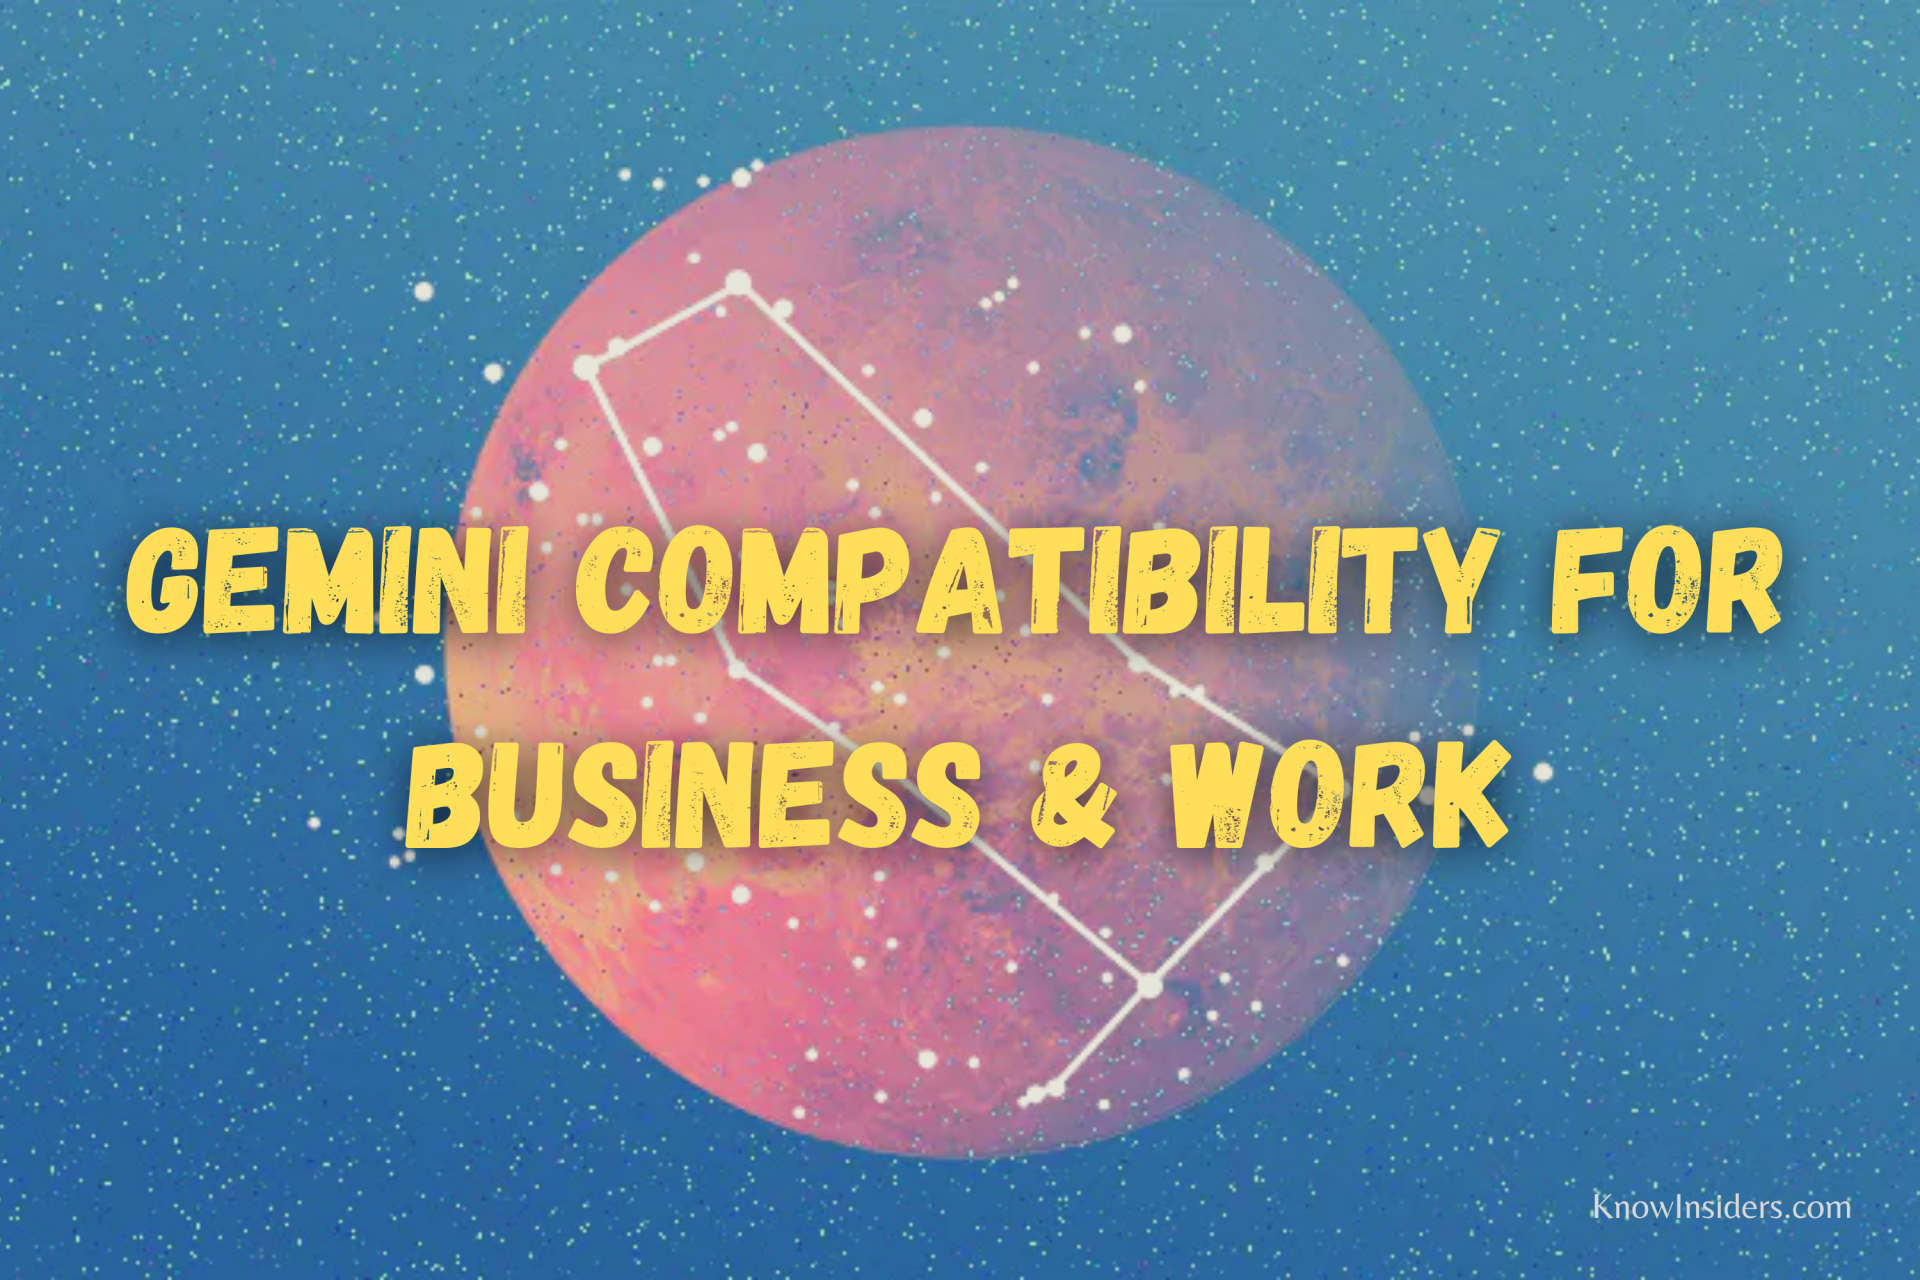 GEMINI - Top 3 Most Compatible Zodiac Signs in Business & Work